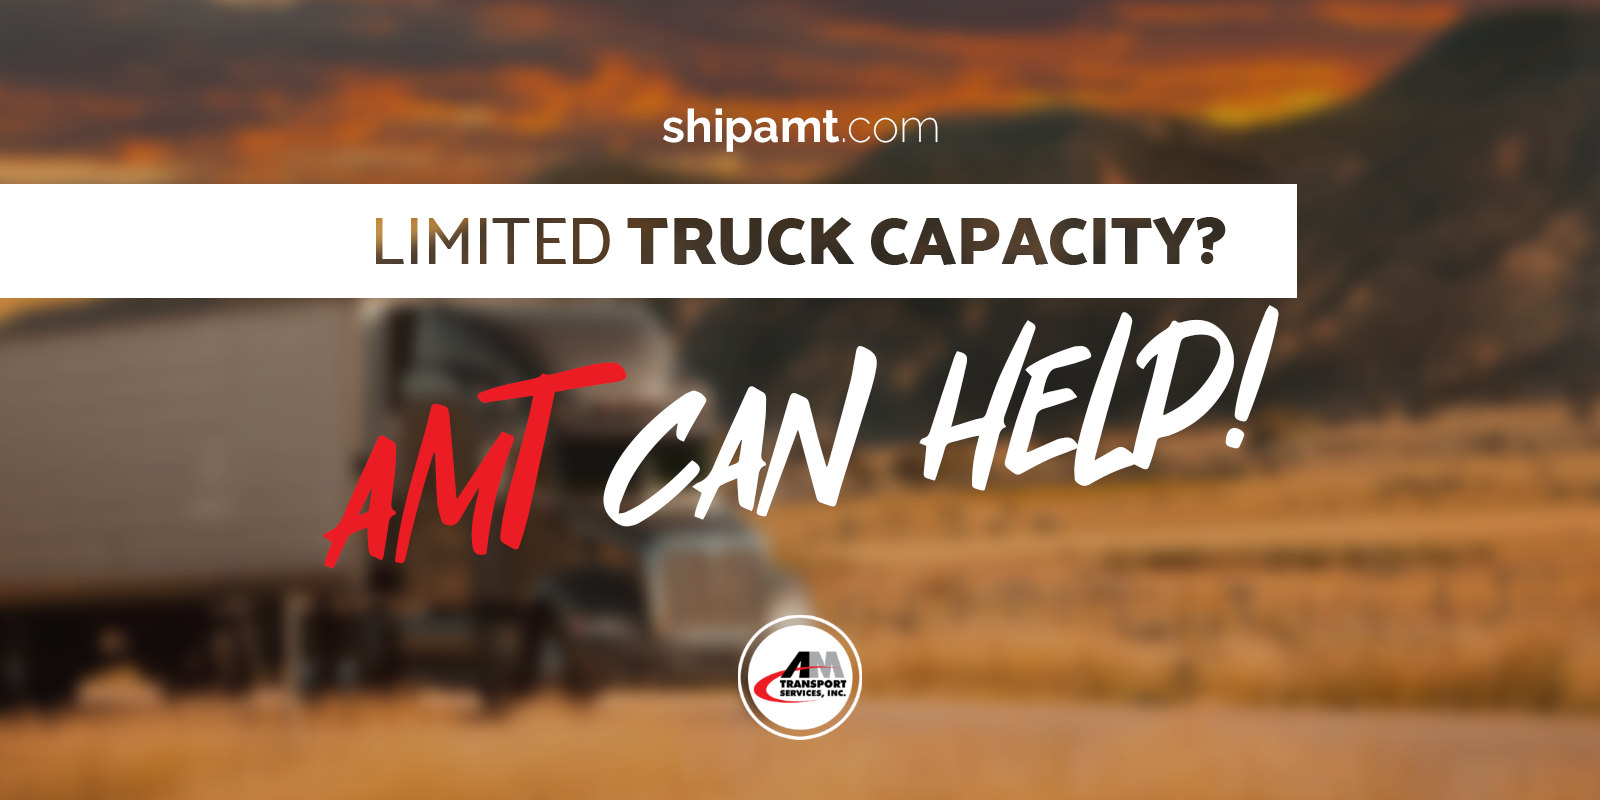 Limited Truck Capacity